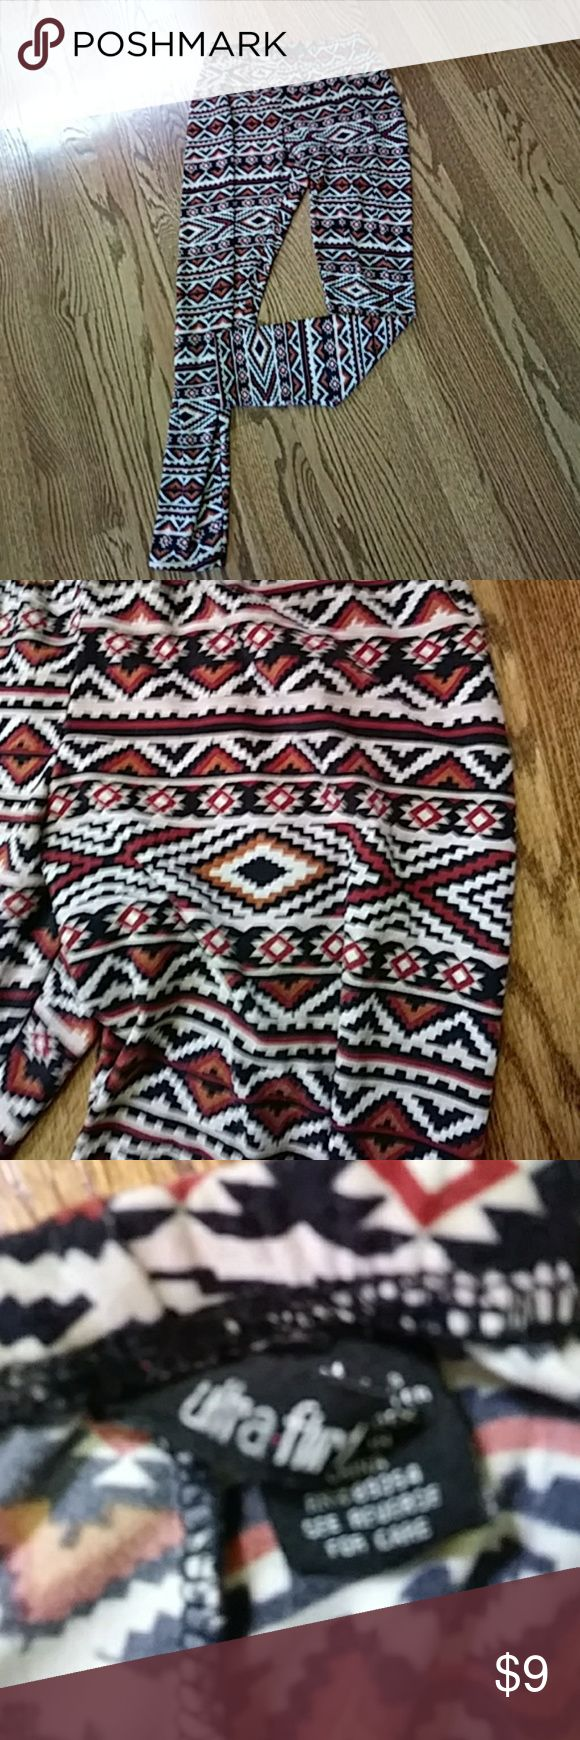 Aztec print soft leggings 50% off bundles Aztec printed neutral colors with burgundy black and whites. Like new condition worn maybe twice! Super soft, skinny style leggings. Polyster and spandex elastic waist line Ultra Flirt Pants Leggings